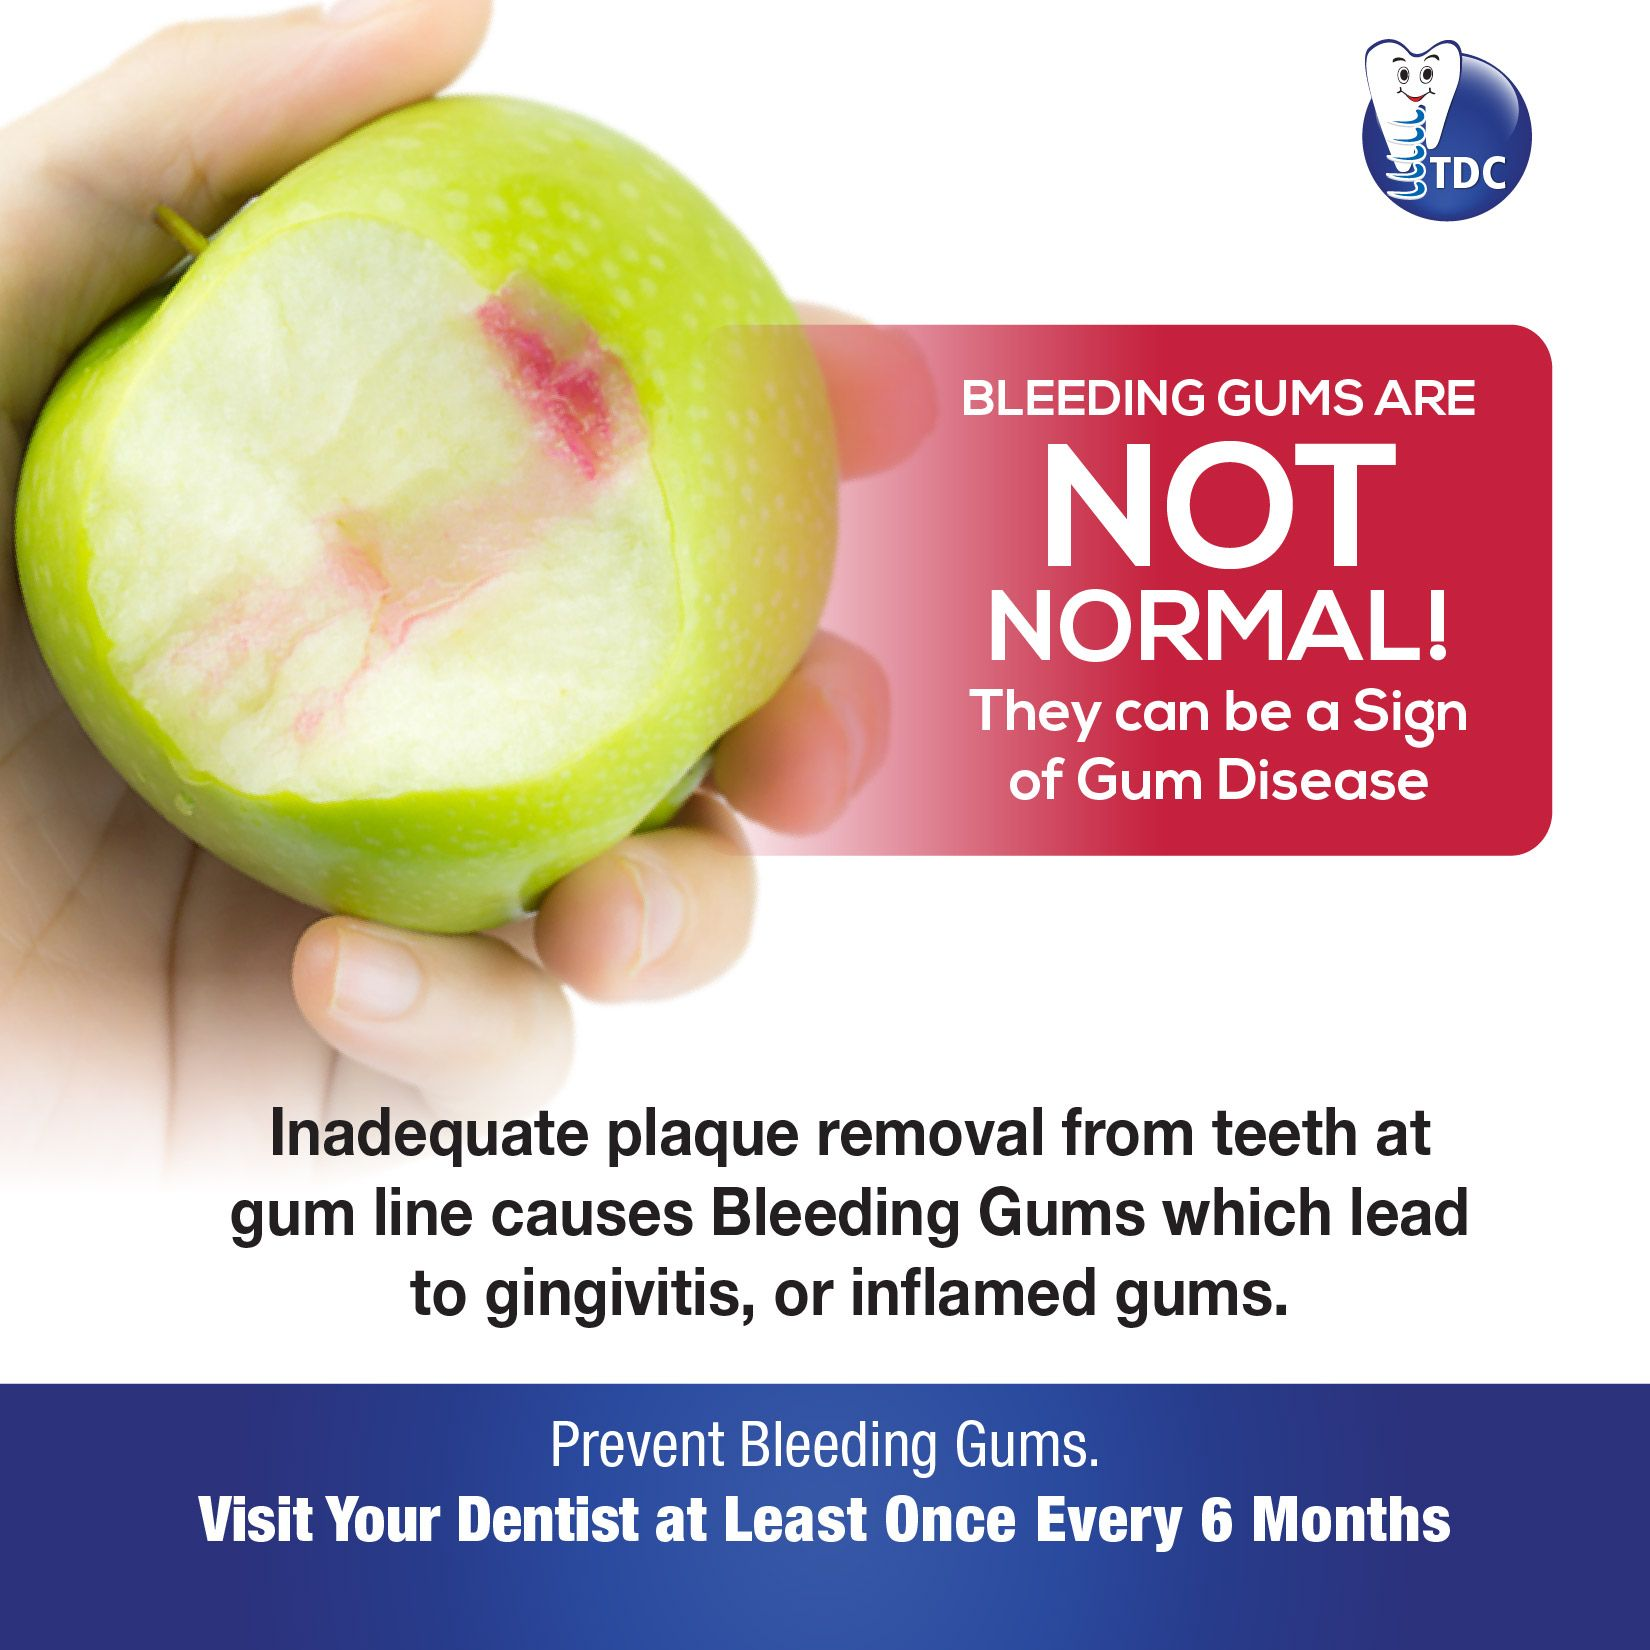 BLEEDING_GUMS ARE NOT NORMAL! They can be a sign of